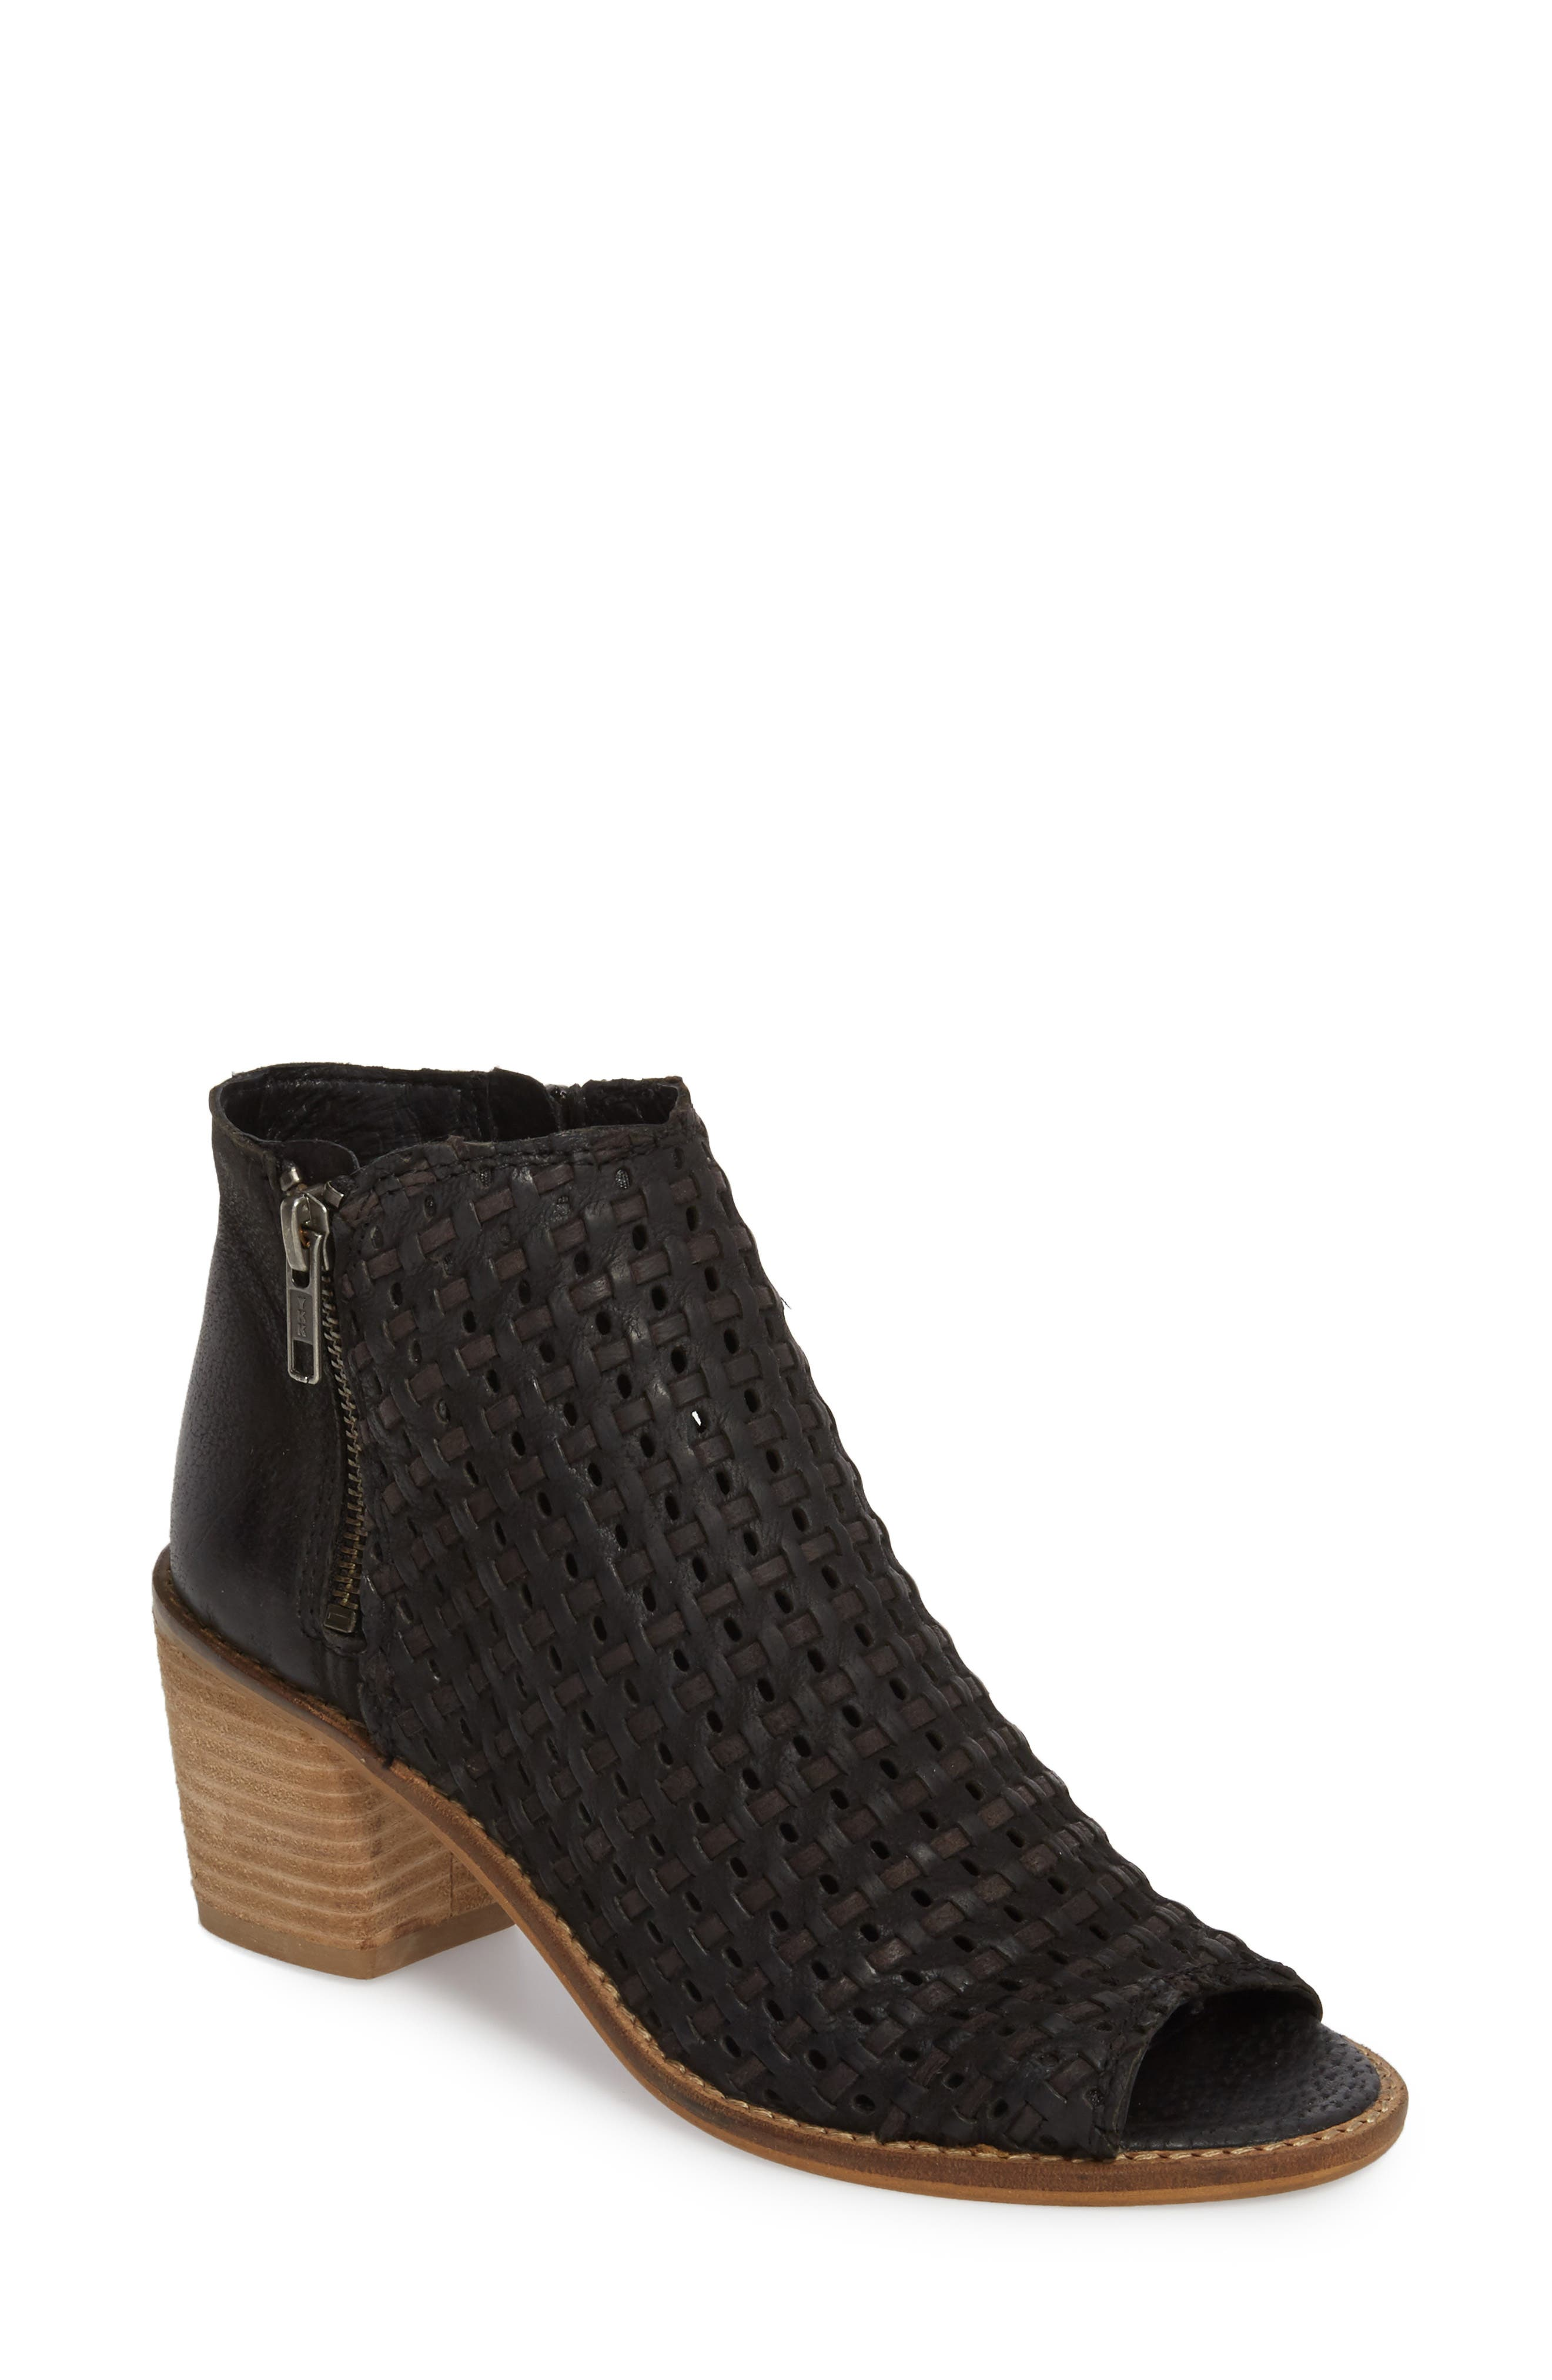 Waterfront Peep Toe Bootie,                             Main thumbnail 1, color,                             BLACK LEATHER